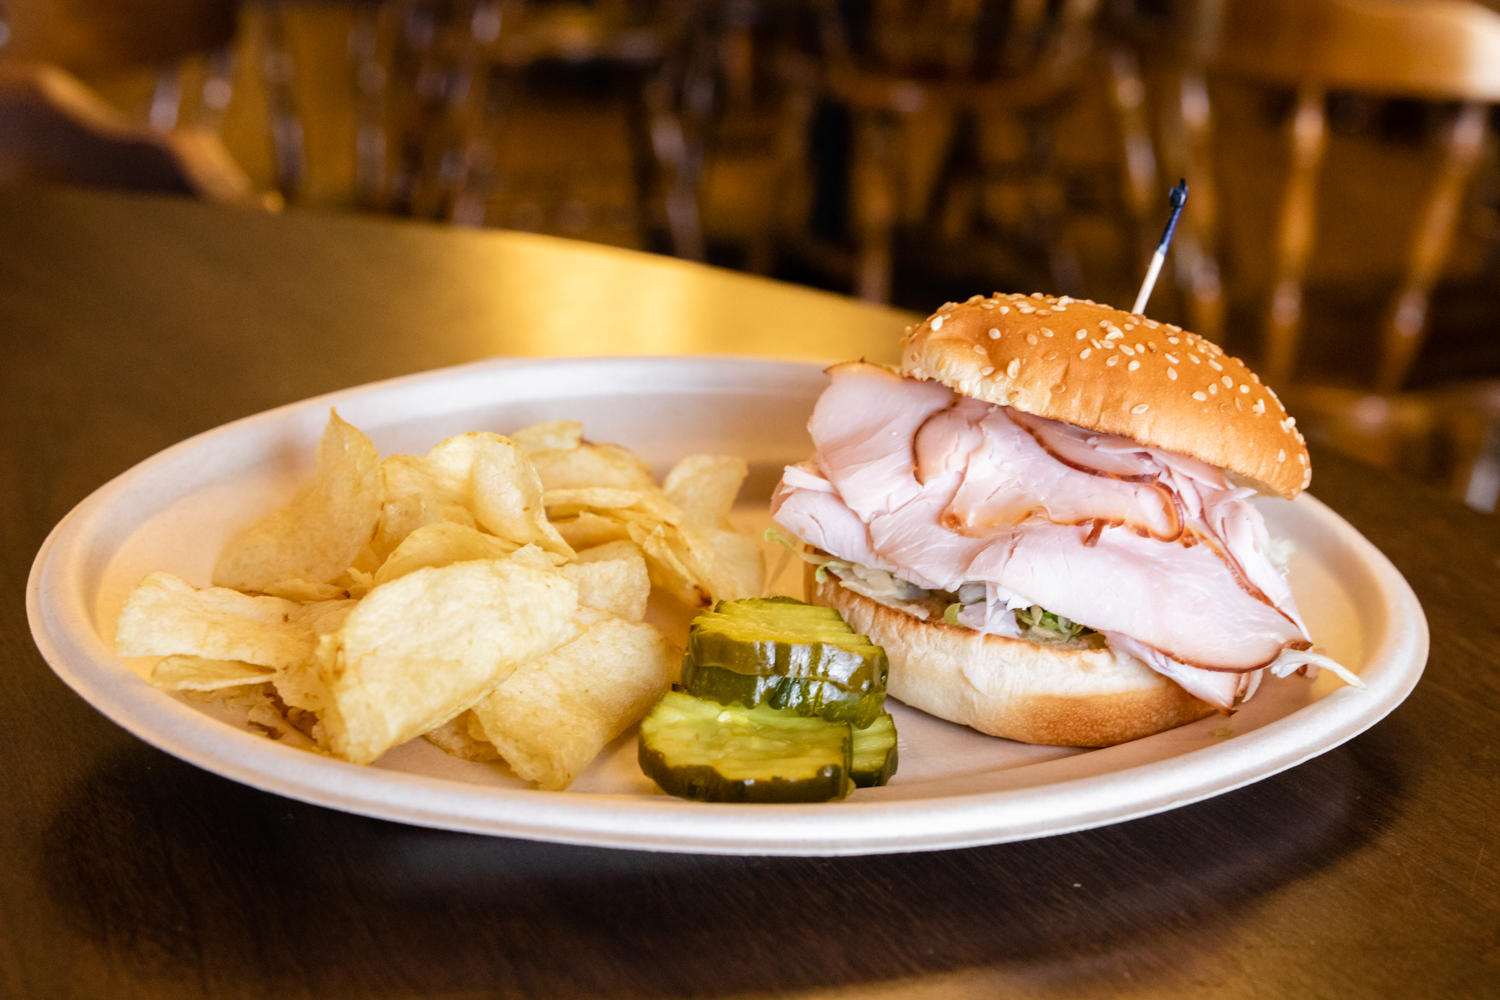 Turkey sandwich with side of chips and pickle on white dish